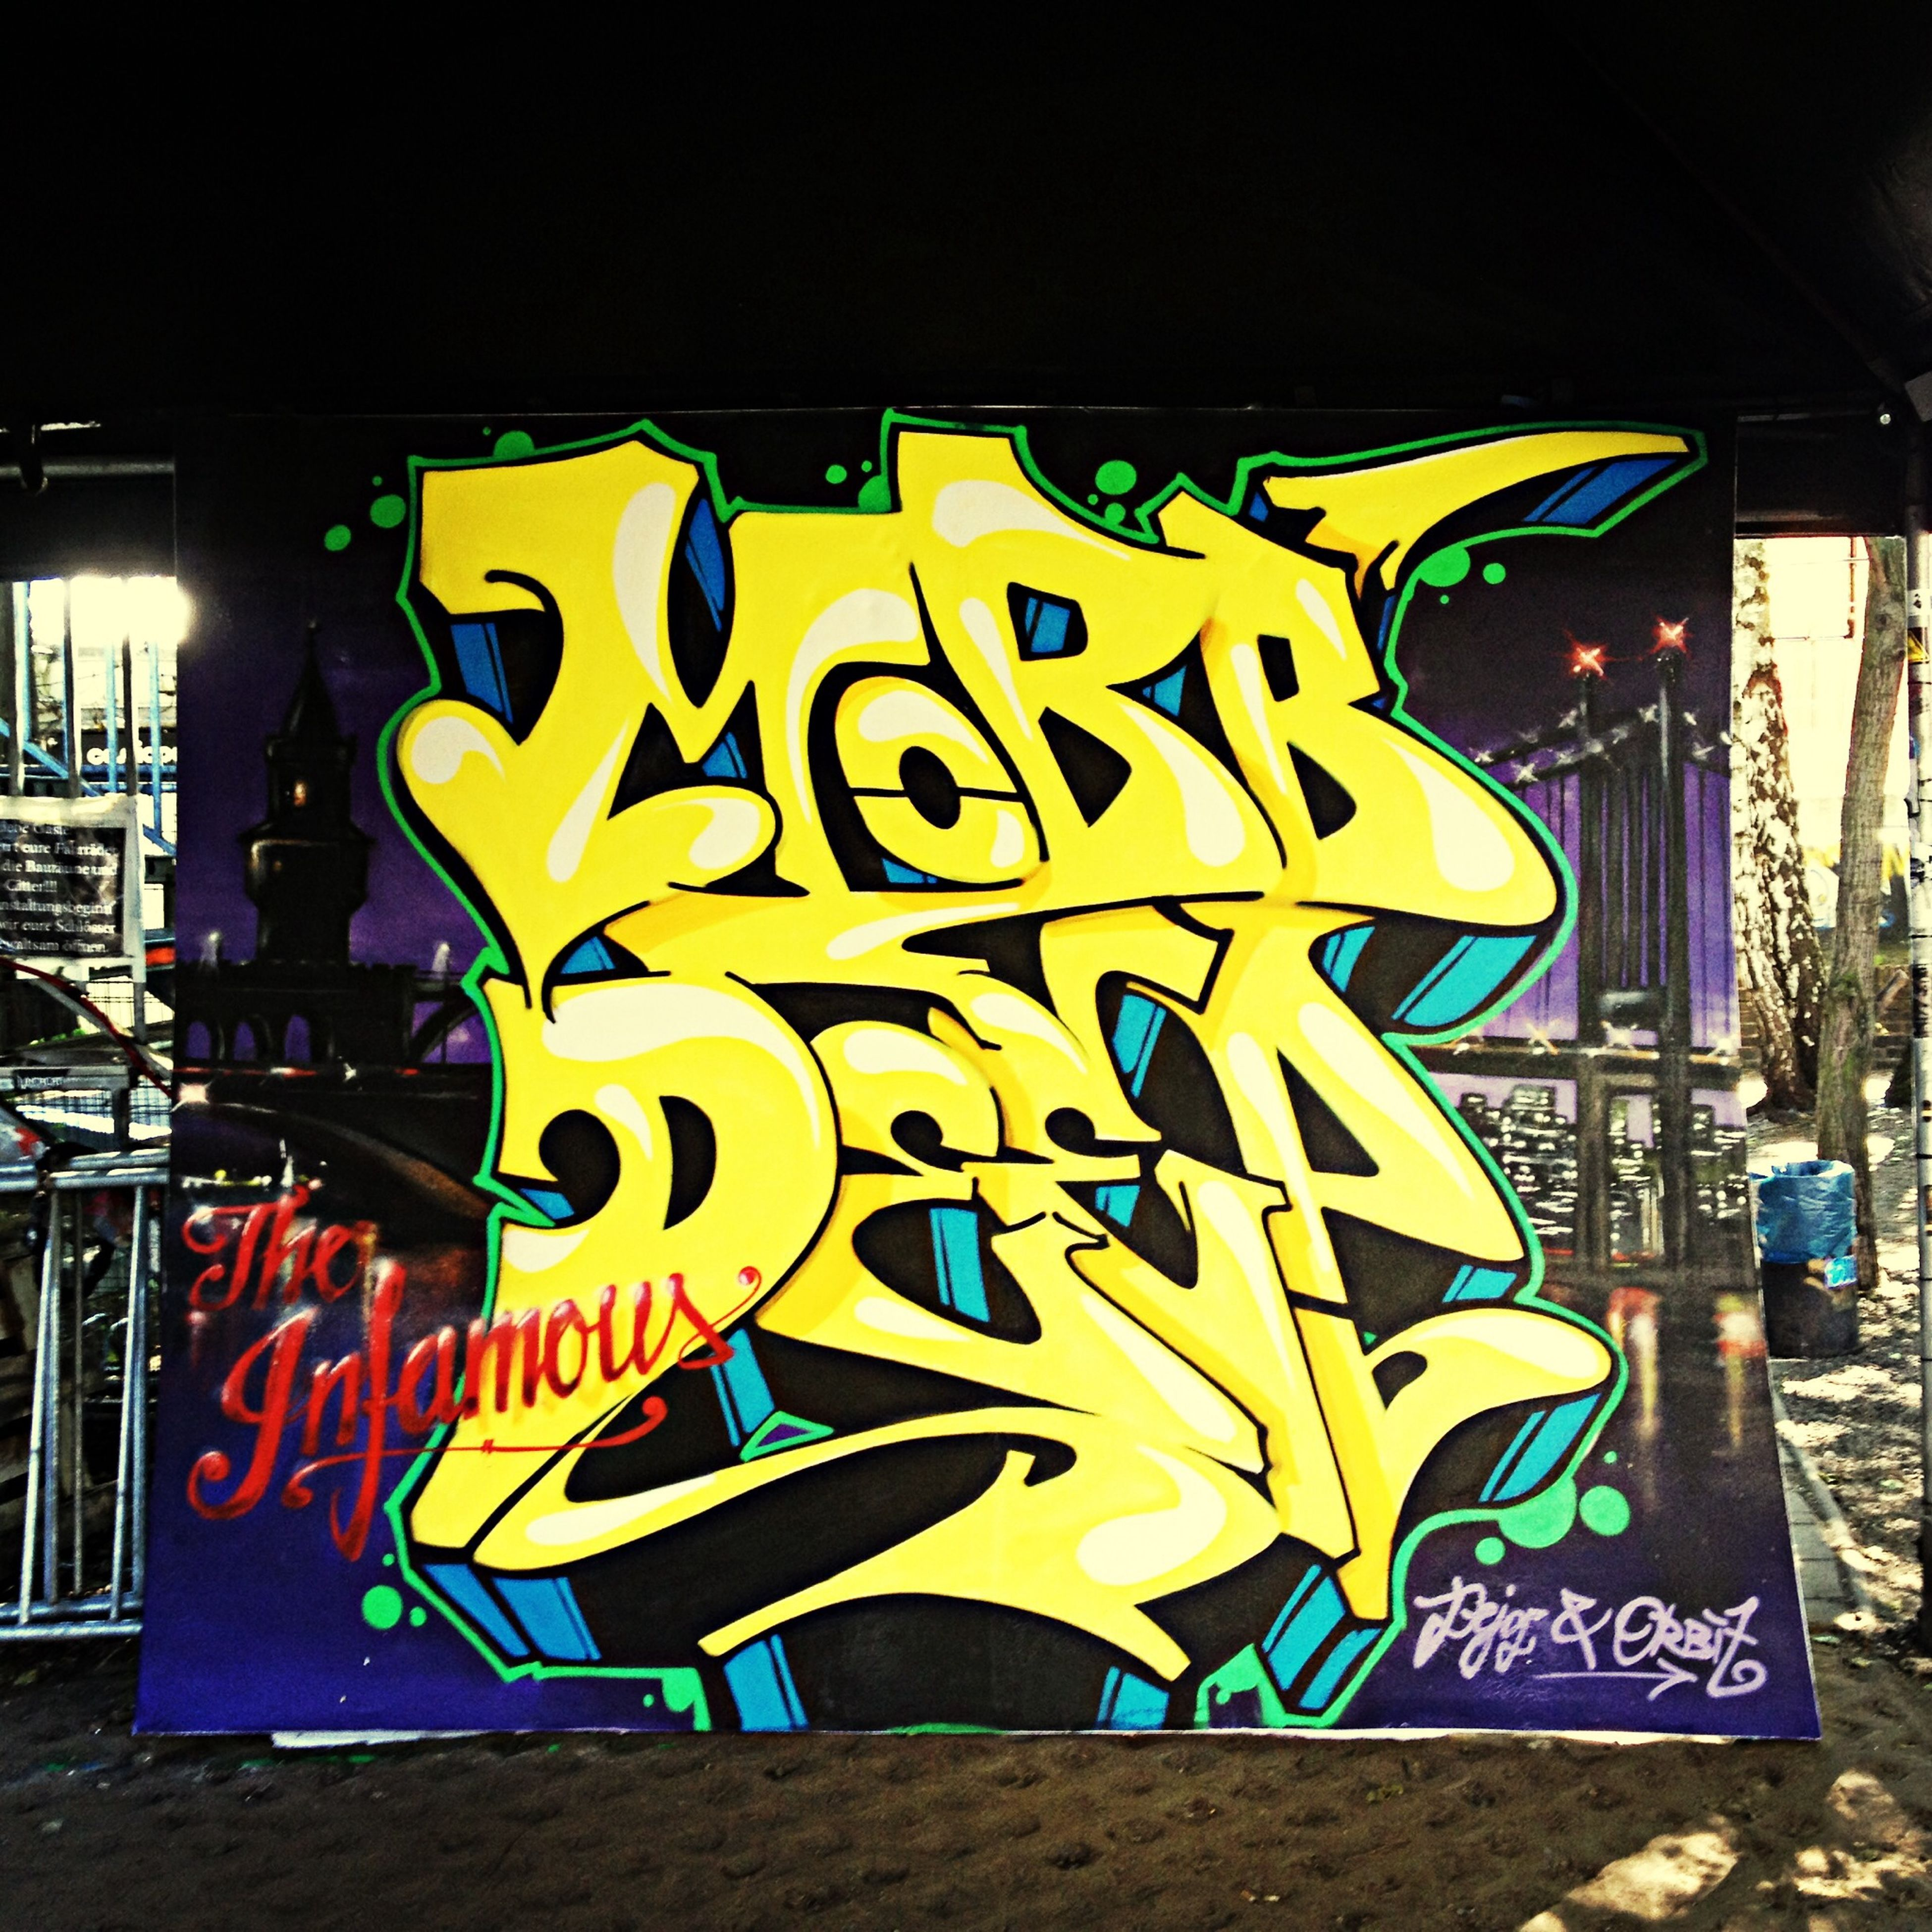 graffiti, art, text, creativity, art and craft, western script, multi colored, yellow, wall - building feature, communication, built structure, building exterior, architecture, human representation, street art, non-western script, outdoors, no people, sign, information sign